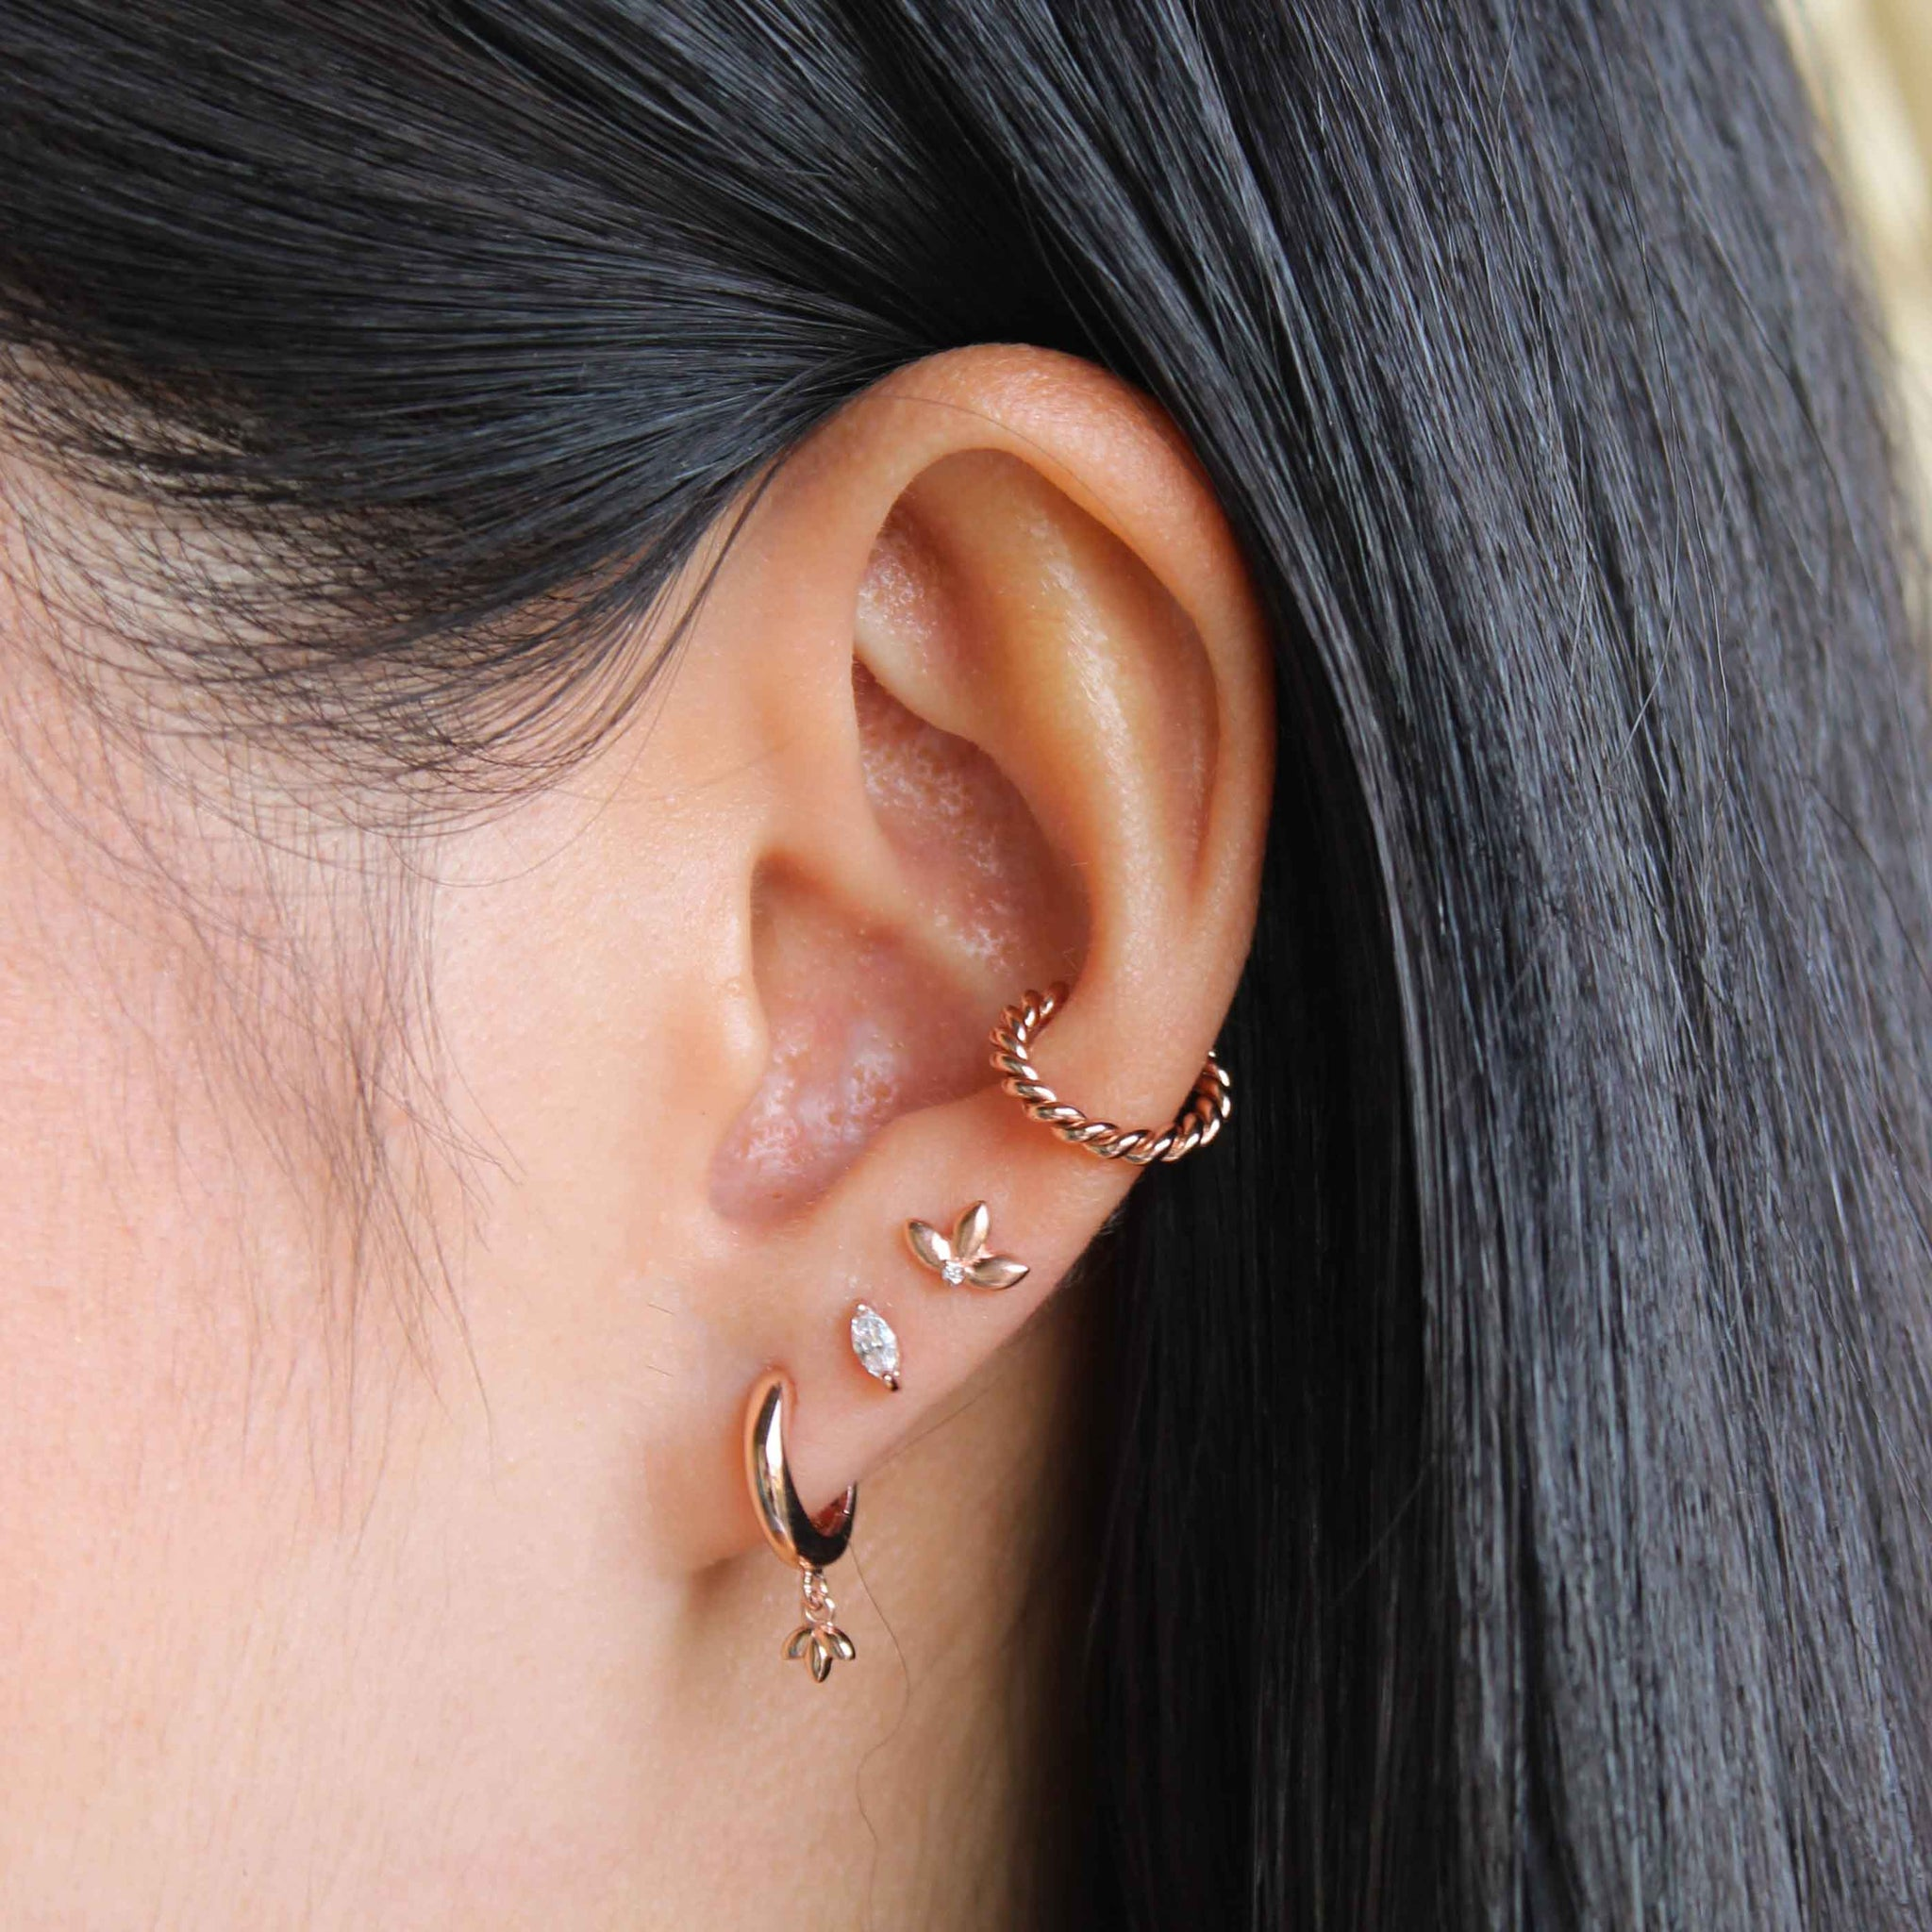 Rope Ear Cuff in Rose Gold worn with hoops and barbells